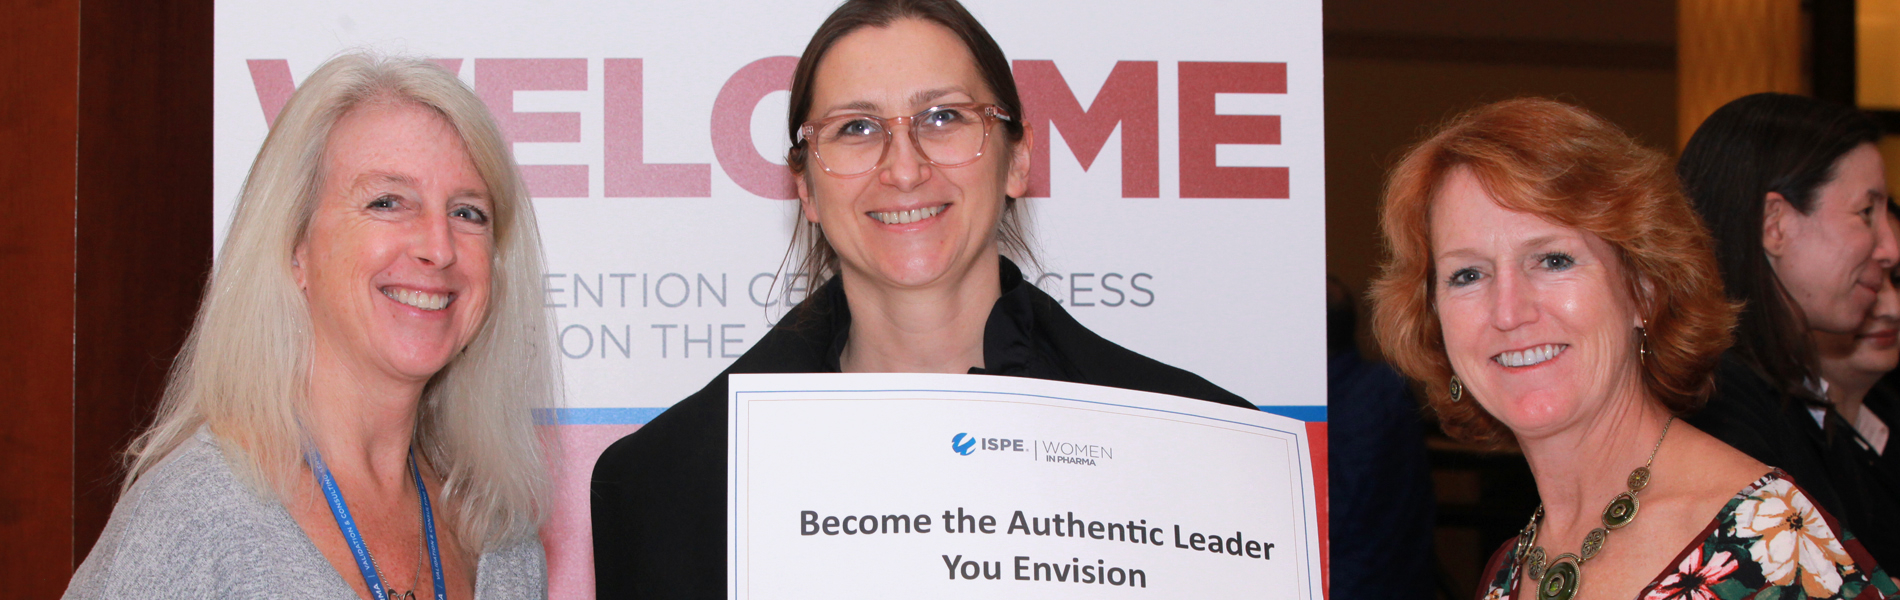 How to Become the Authentic Leader You Envision - ISPE Pharmaceutical Engineering